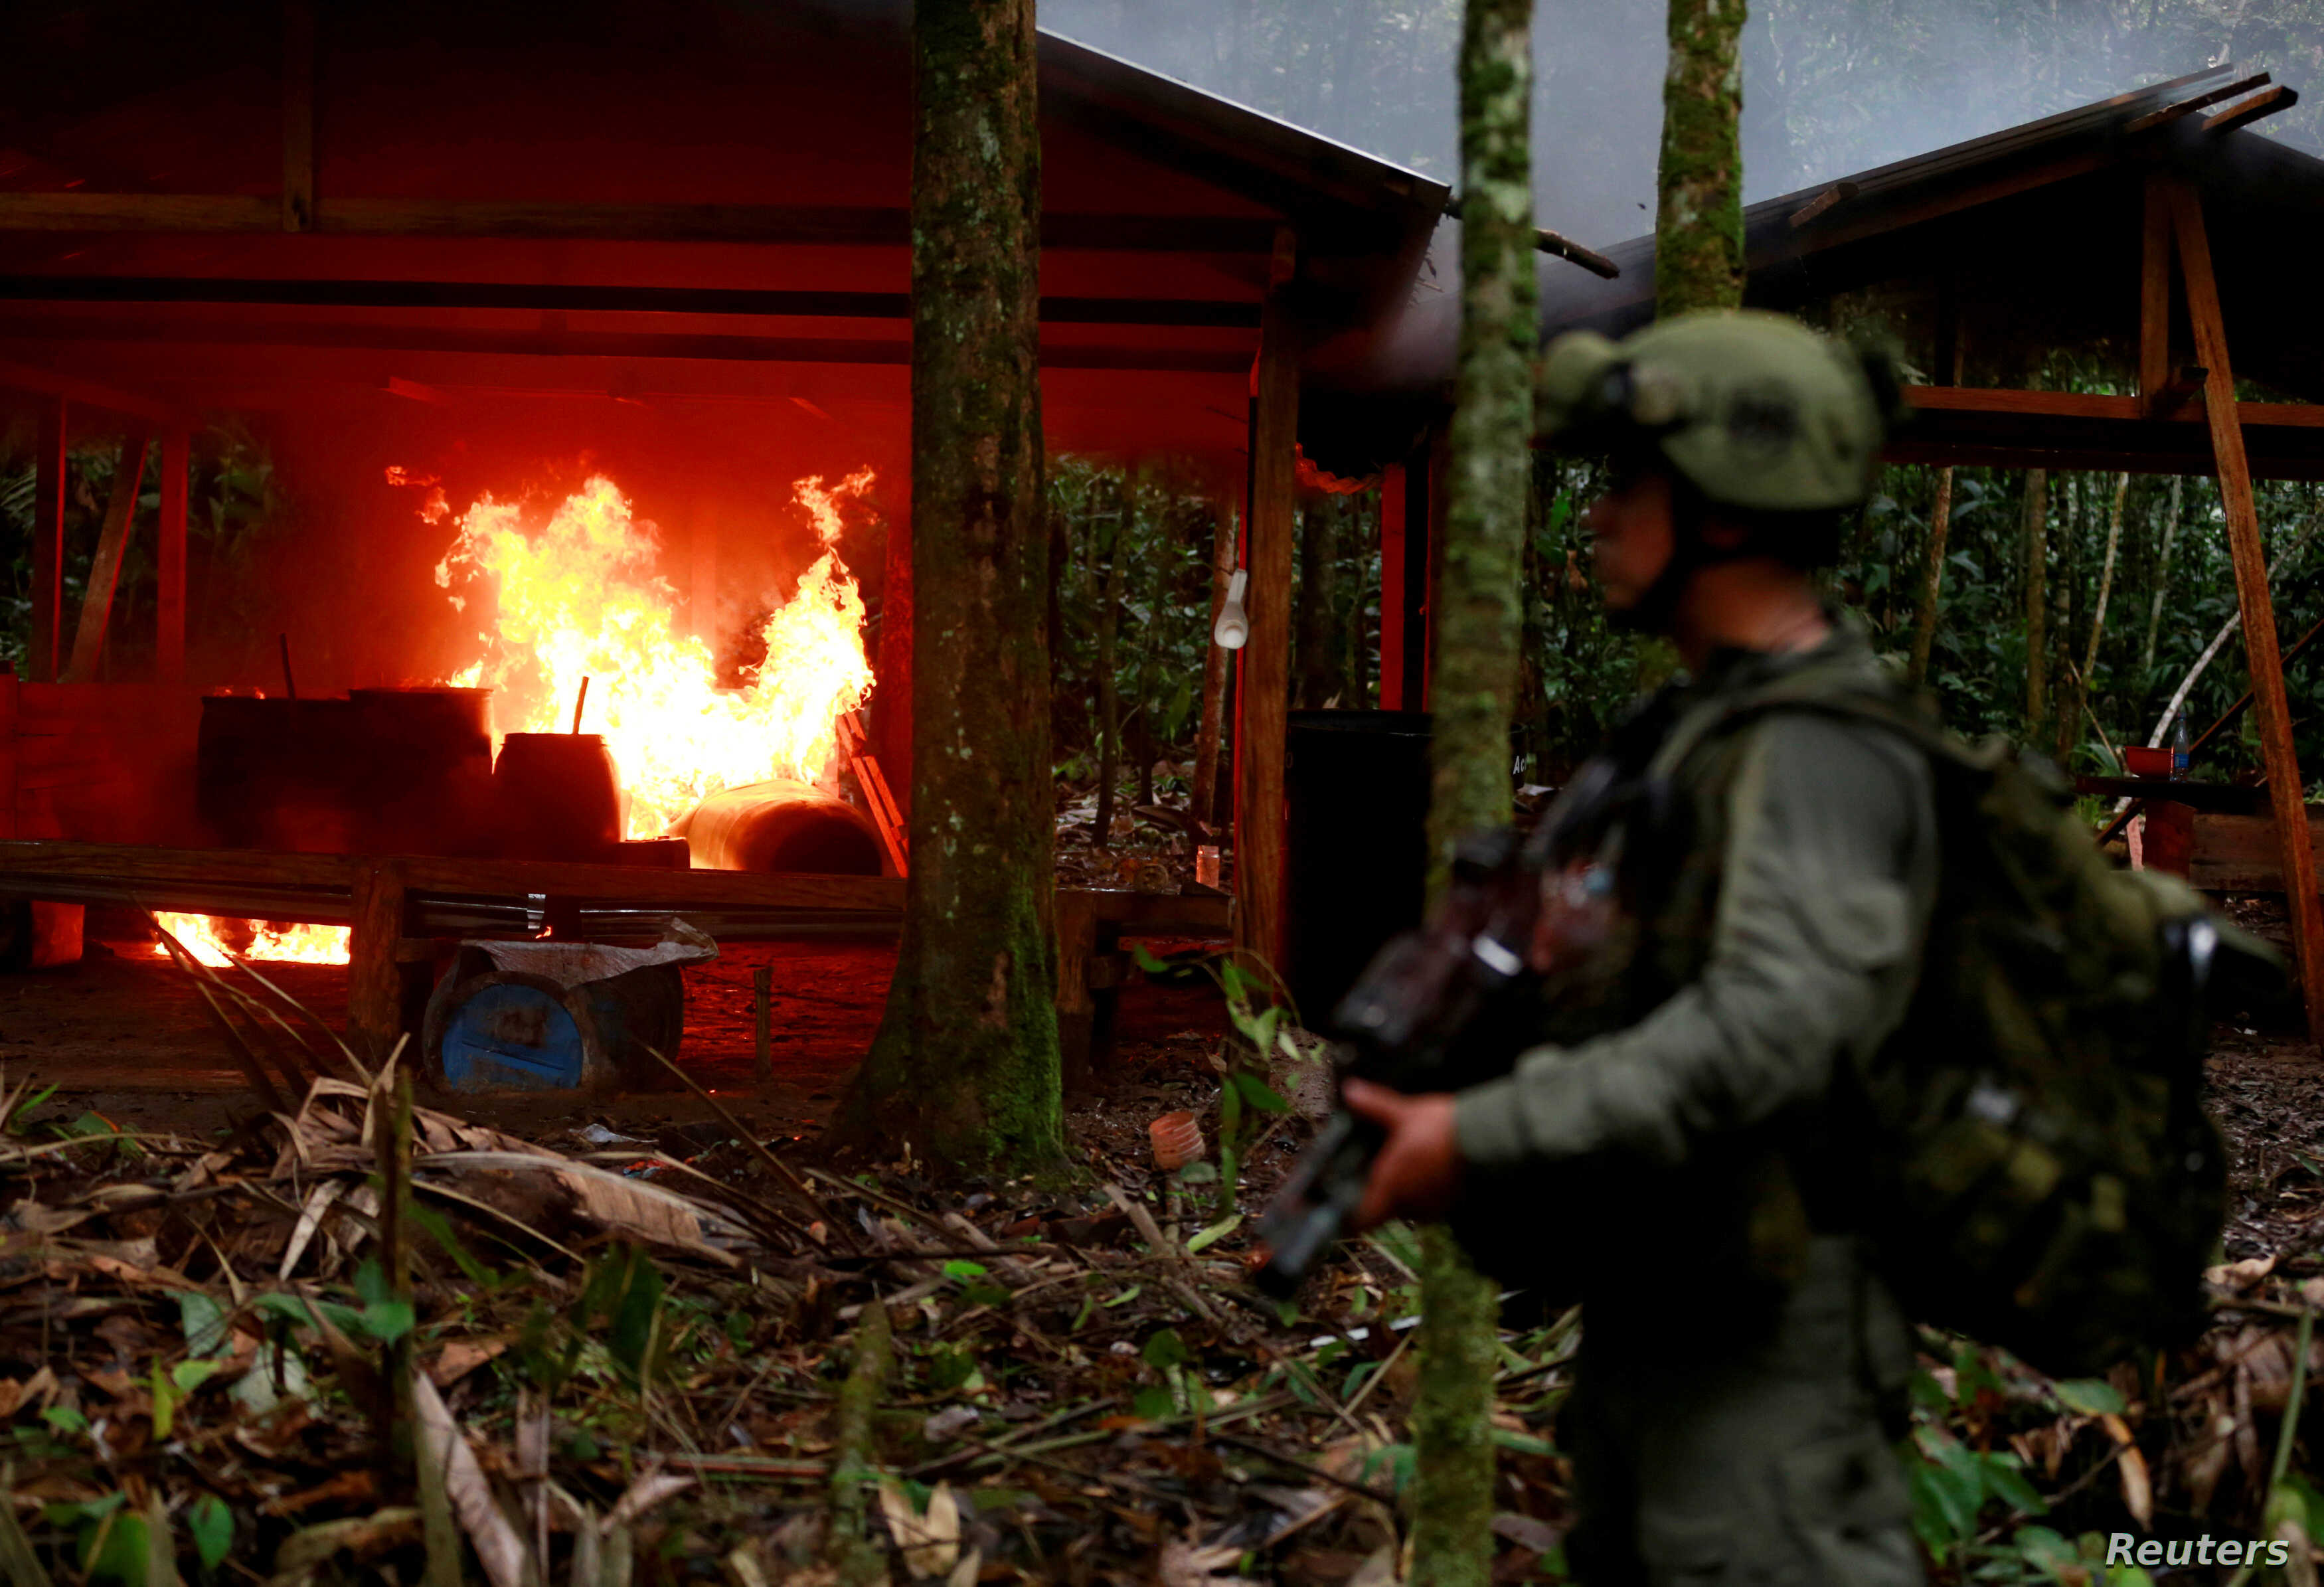 A Colombian anti-narcotics policeman stands guard after burning a cocaine lab, which police said belongs to criminal gangs, in a rural area of Colombia, August 2, 2016. Colombia, one of the world's top cocaine producers, sold $2 billion in illegal d